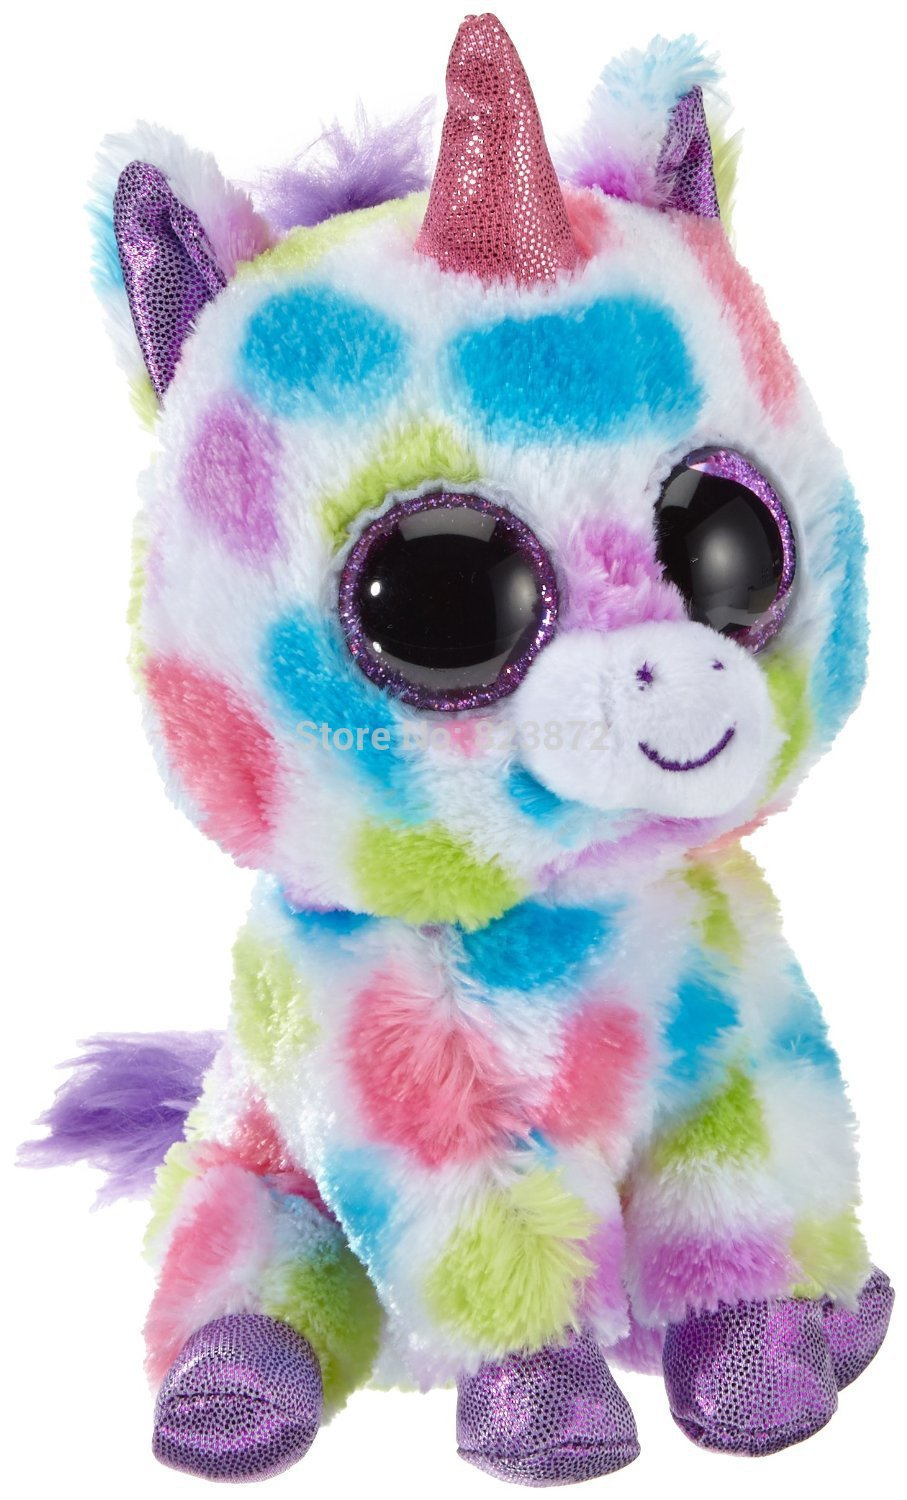 TY Plush Animals Beanie Boos Wishful Unicorn Plush Toys Large 25cm 10   Ty  Big Eyed Stuffed Animals Soft Toy Uunicornio Toys ab6558a7ba3